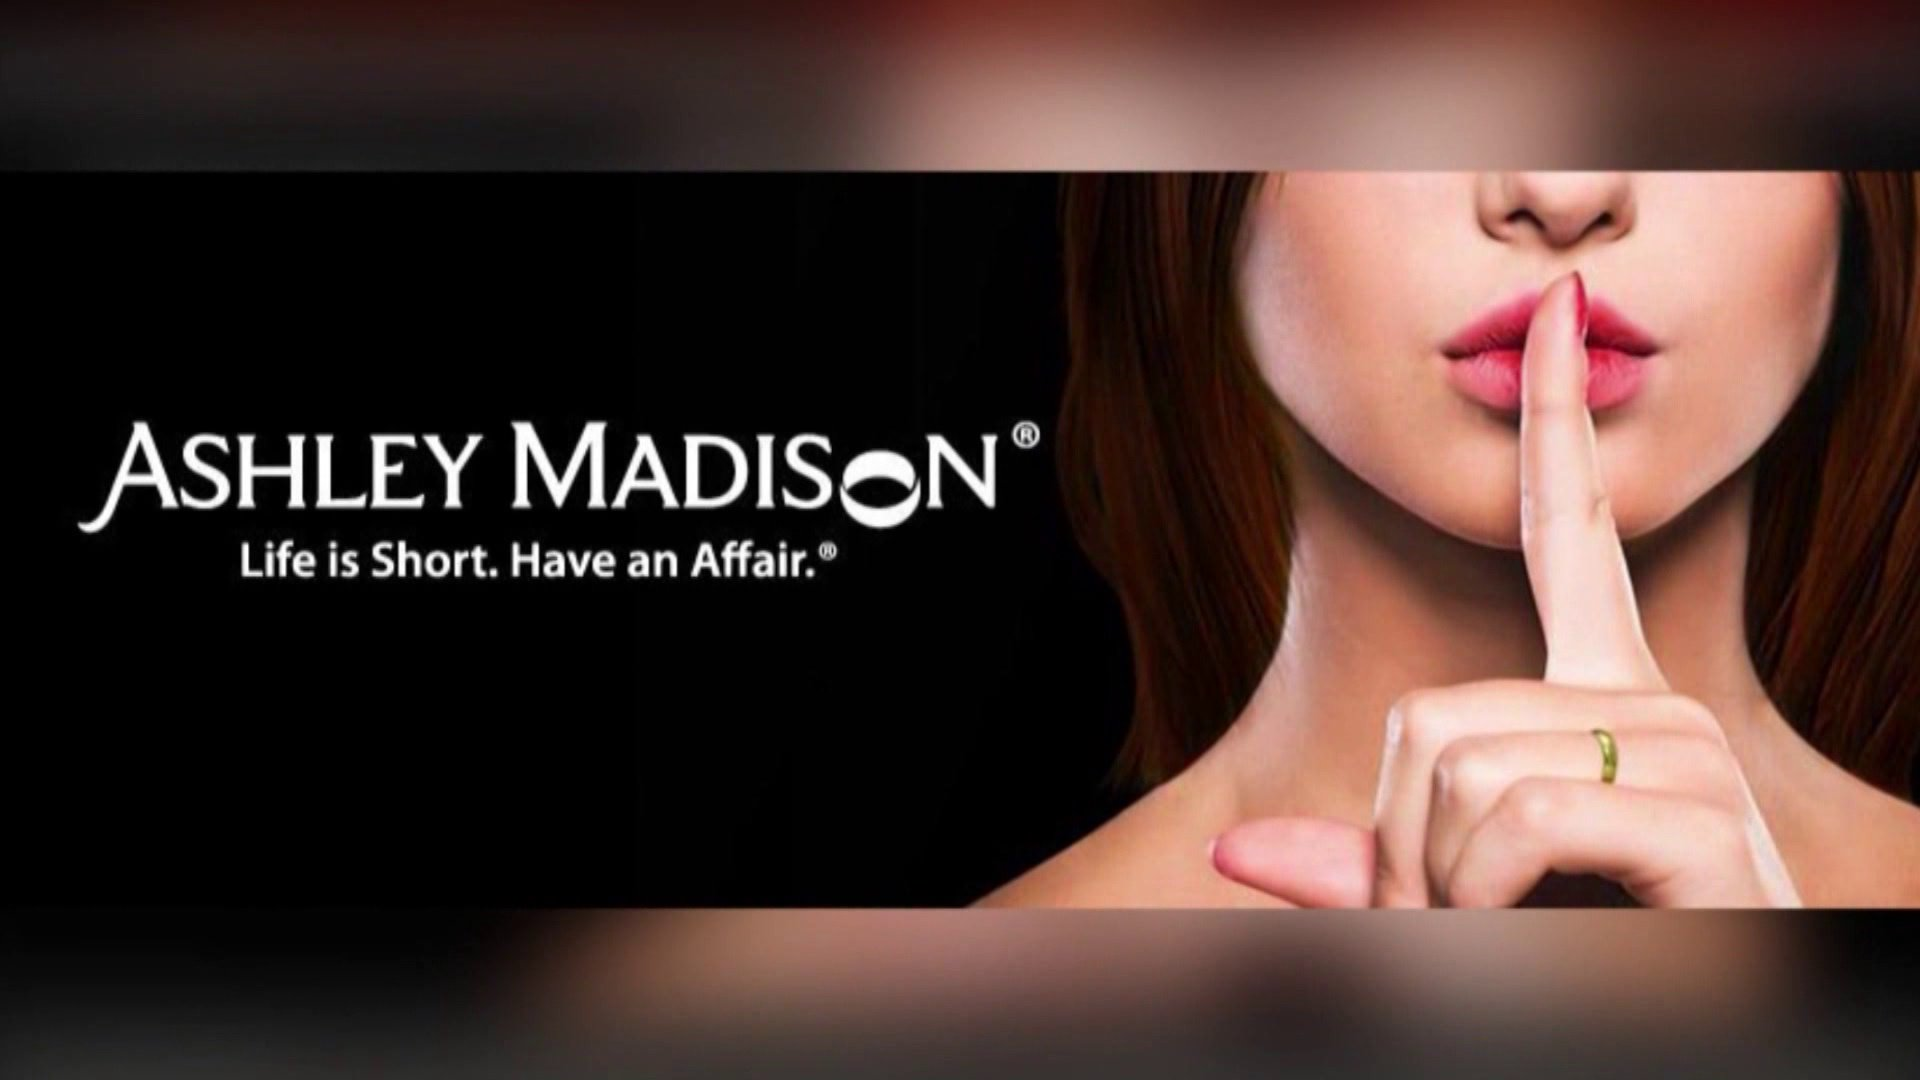 Ashley Madison customers must reveal identity to sue the company